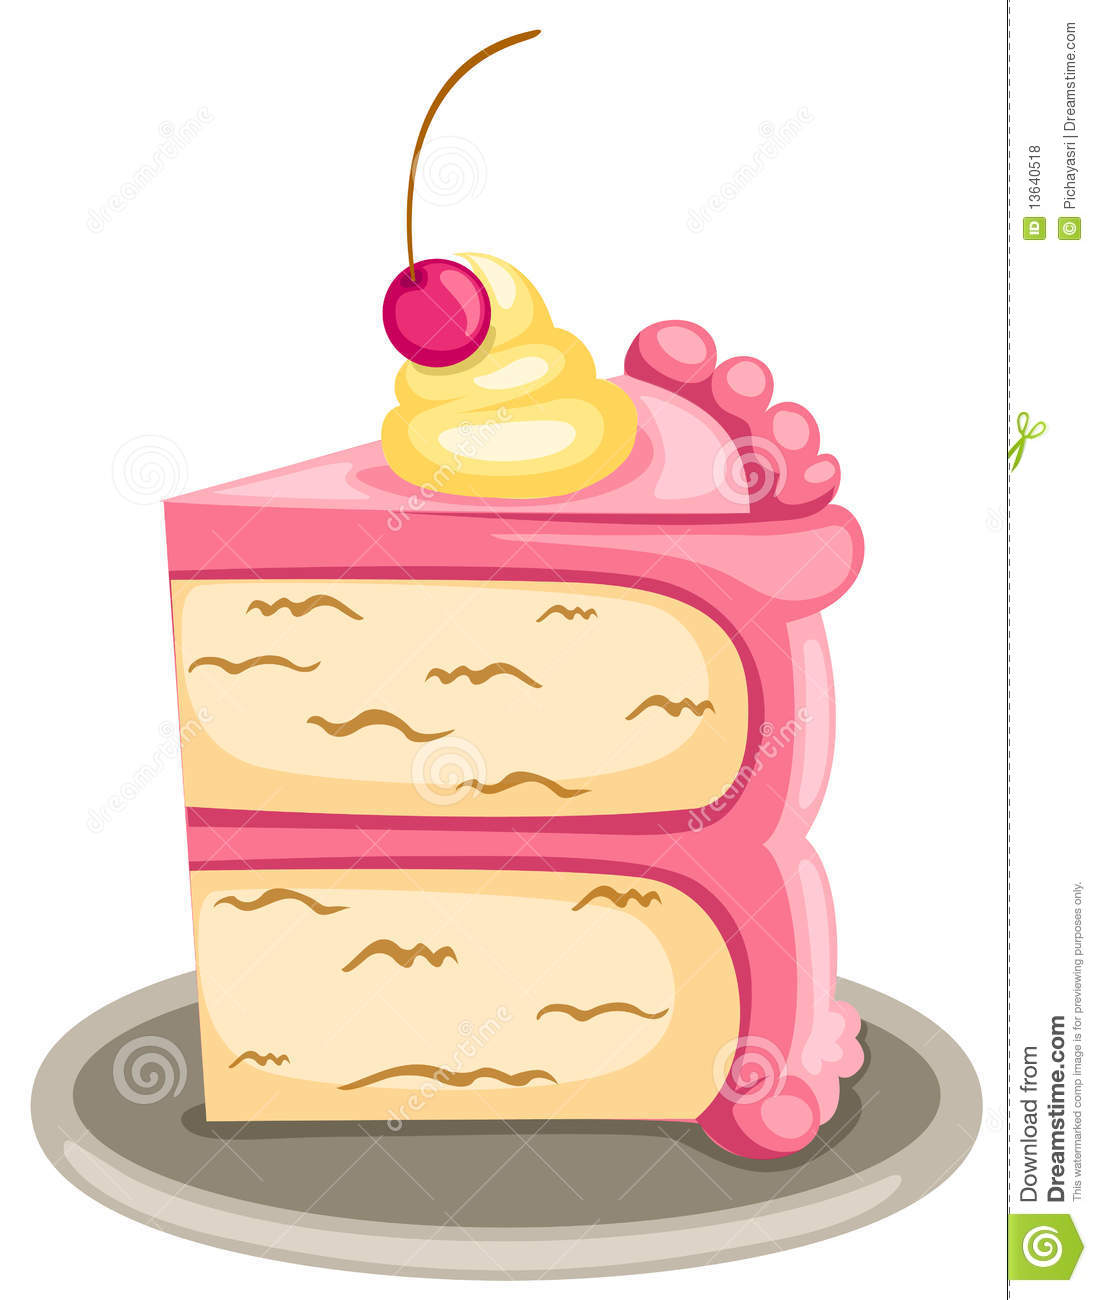 Illustration Of Isolated Piece Of Cake O-Illustration Of Isolated Piece Of Cake On White Background-8